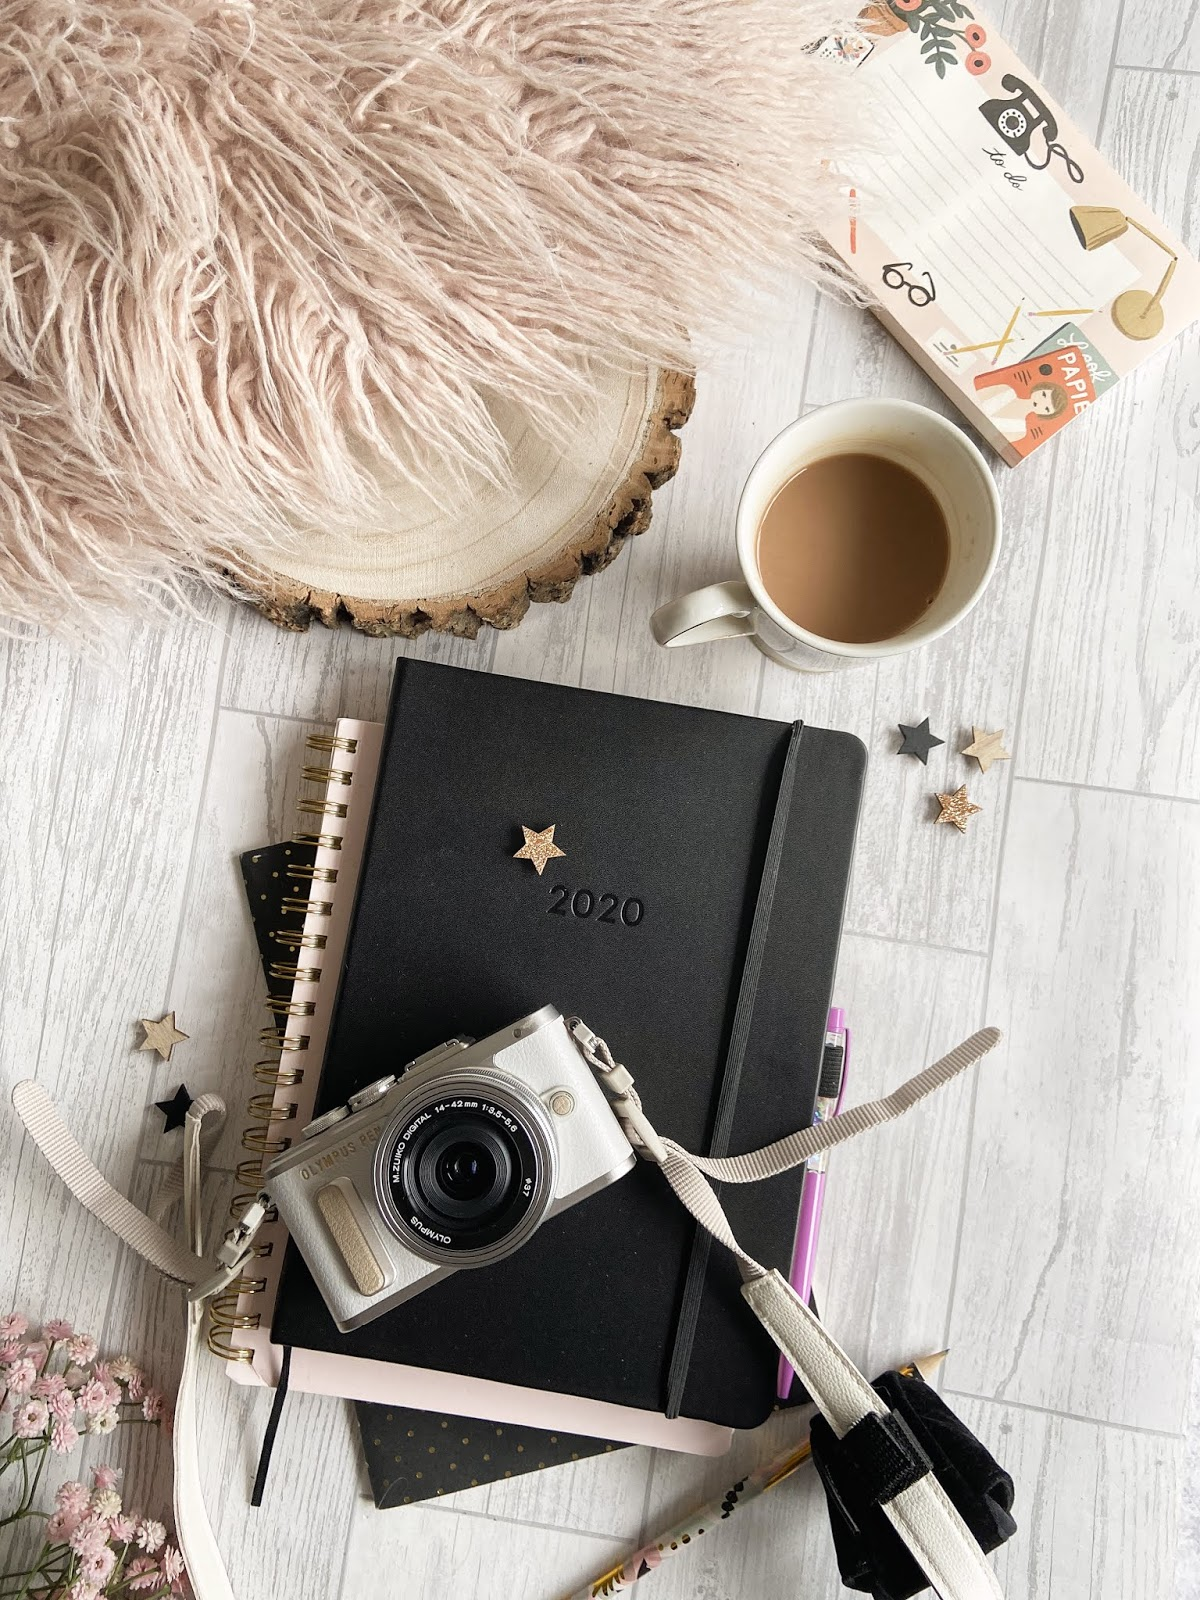 things I want to achieve with blogging this year - see the stars